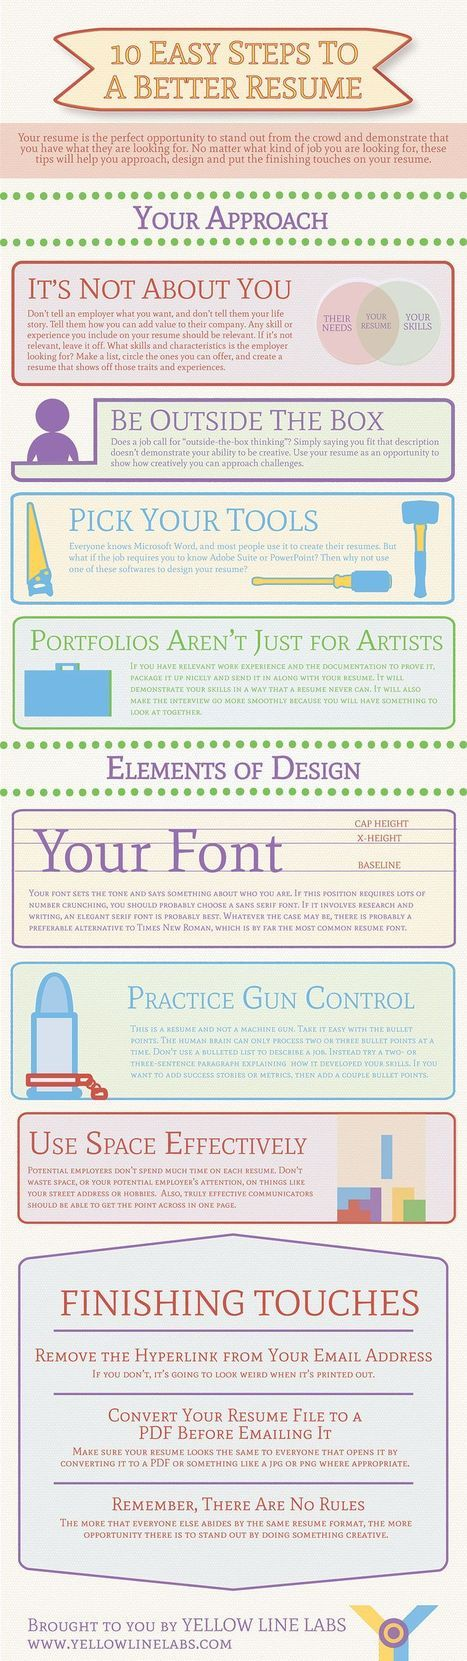 222 best Resume Tips images on Pinterest Resume tips, Job search - modern resume tips